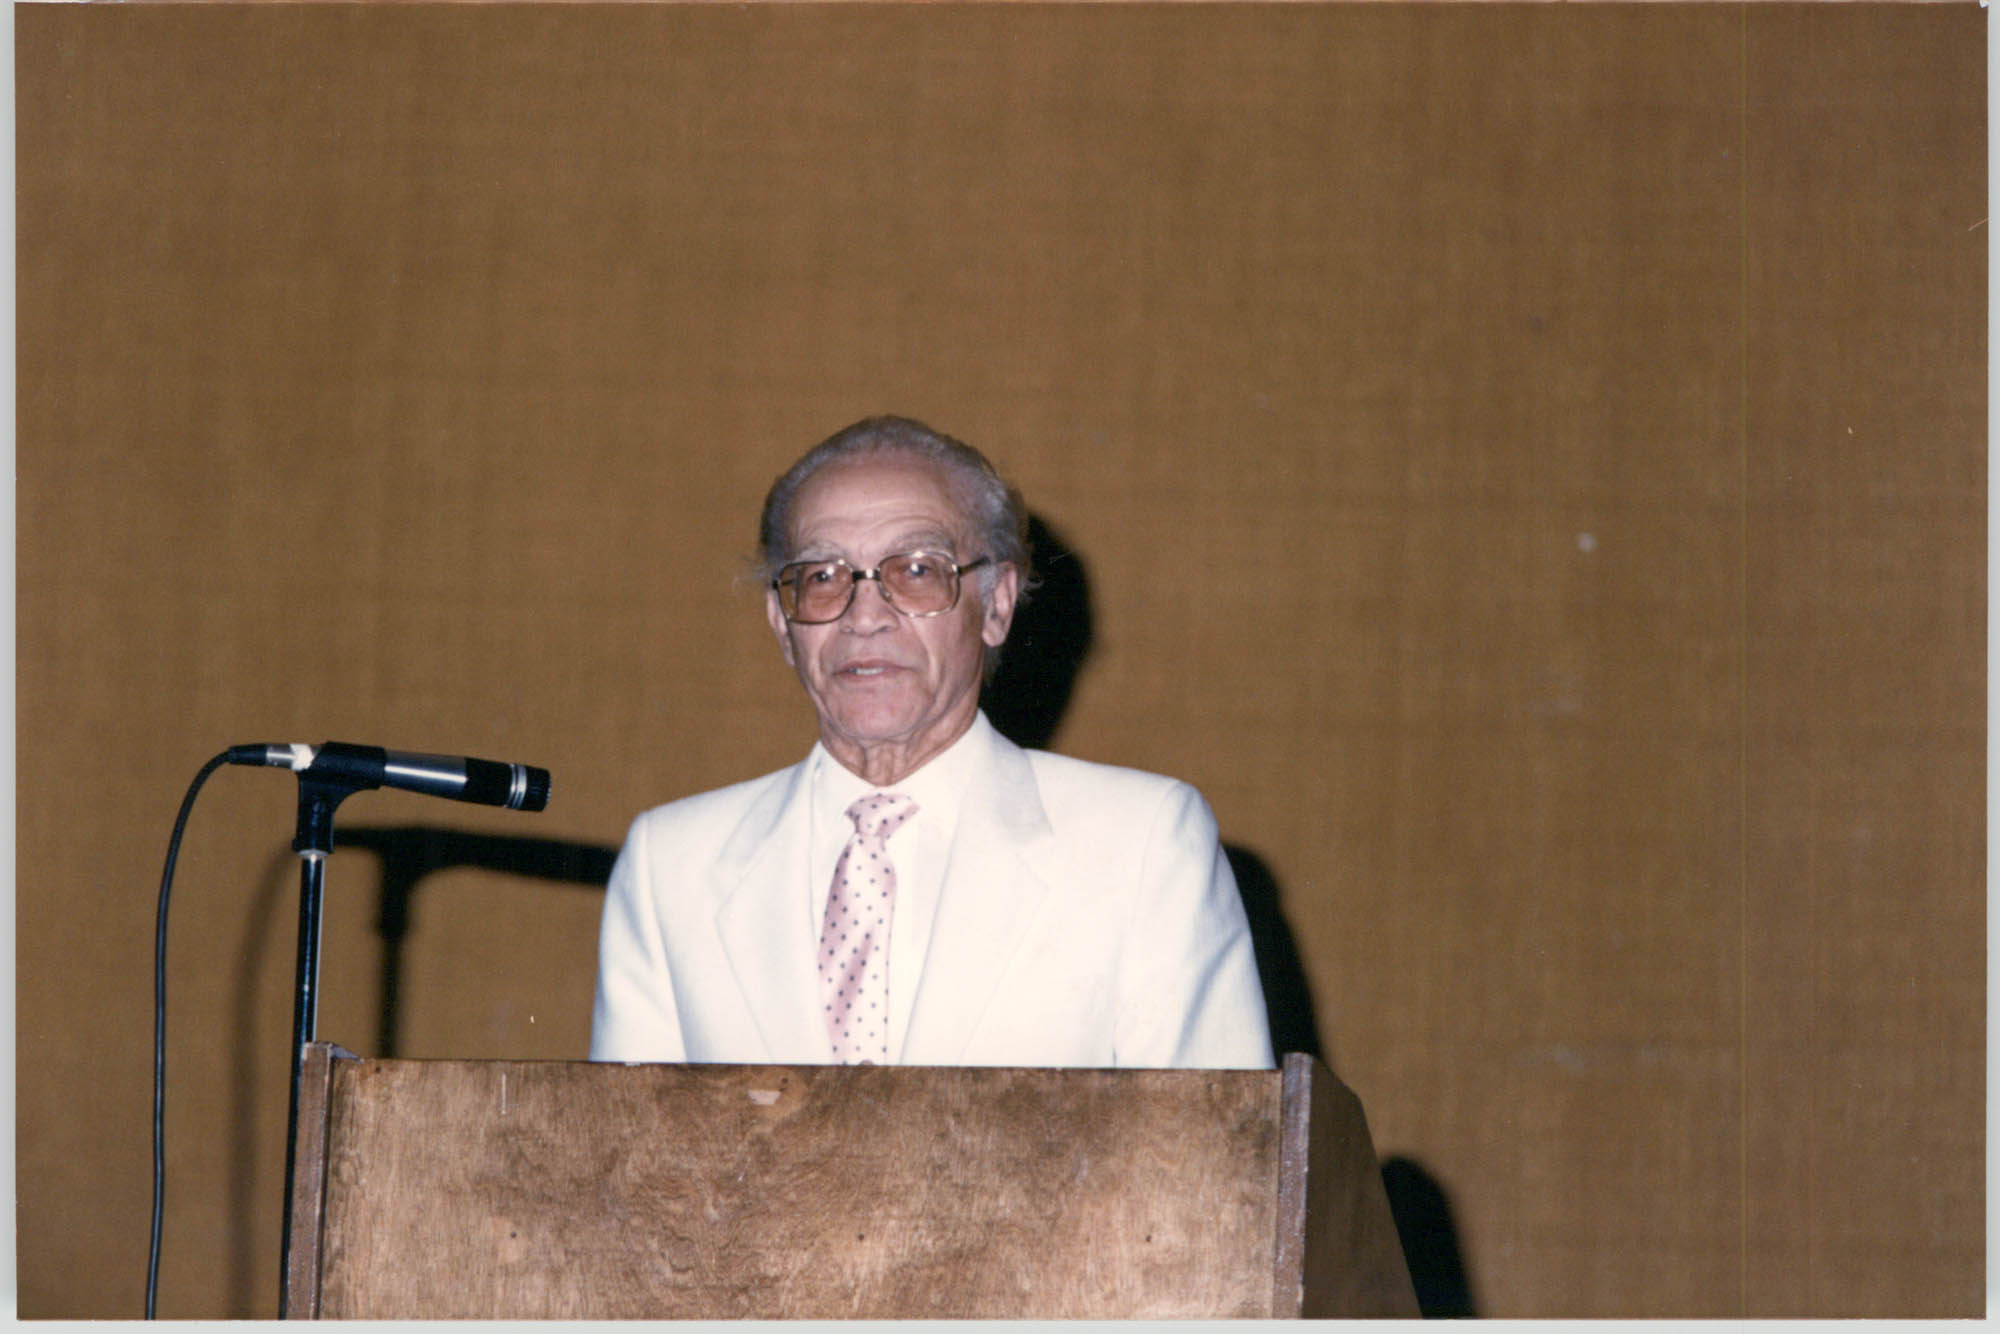 Photograph of Theodore Coker, Jr. at a College of Charleston Event